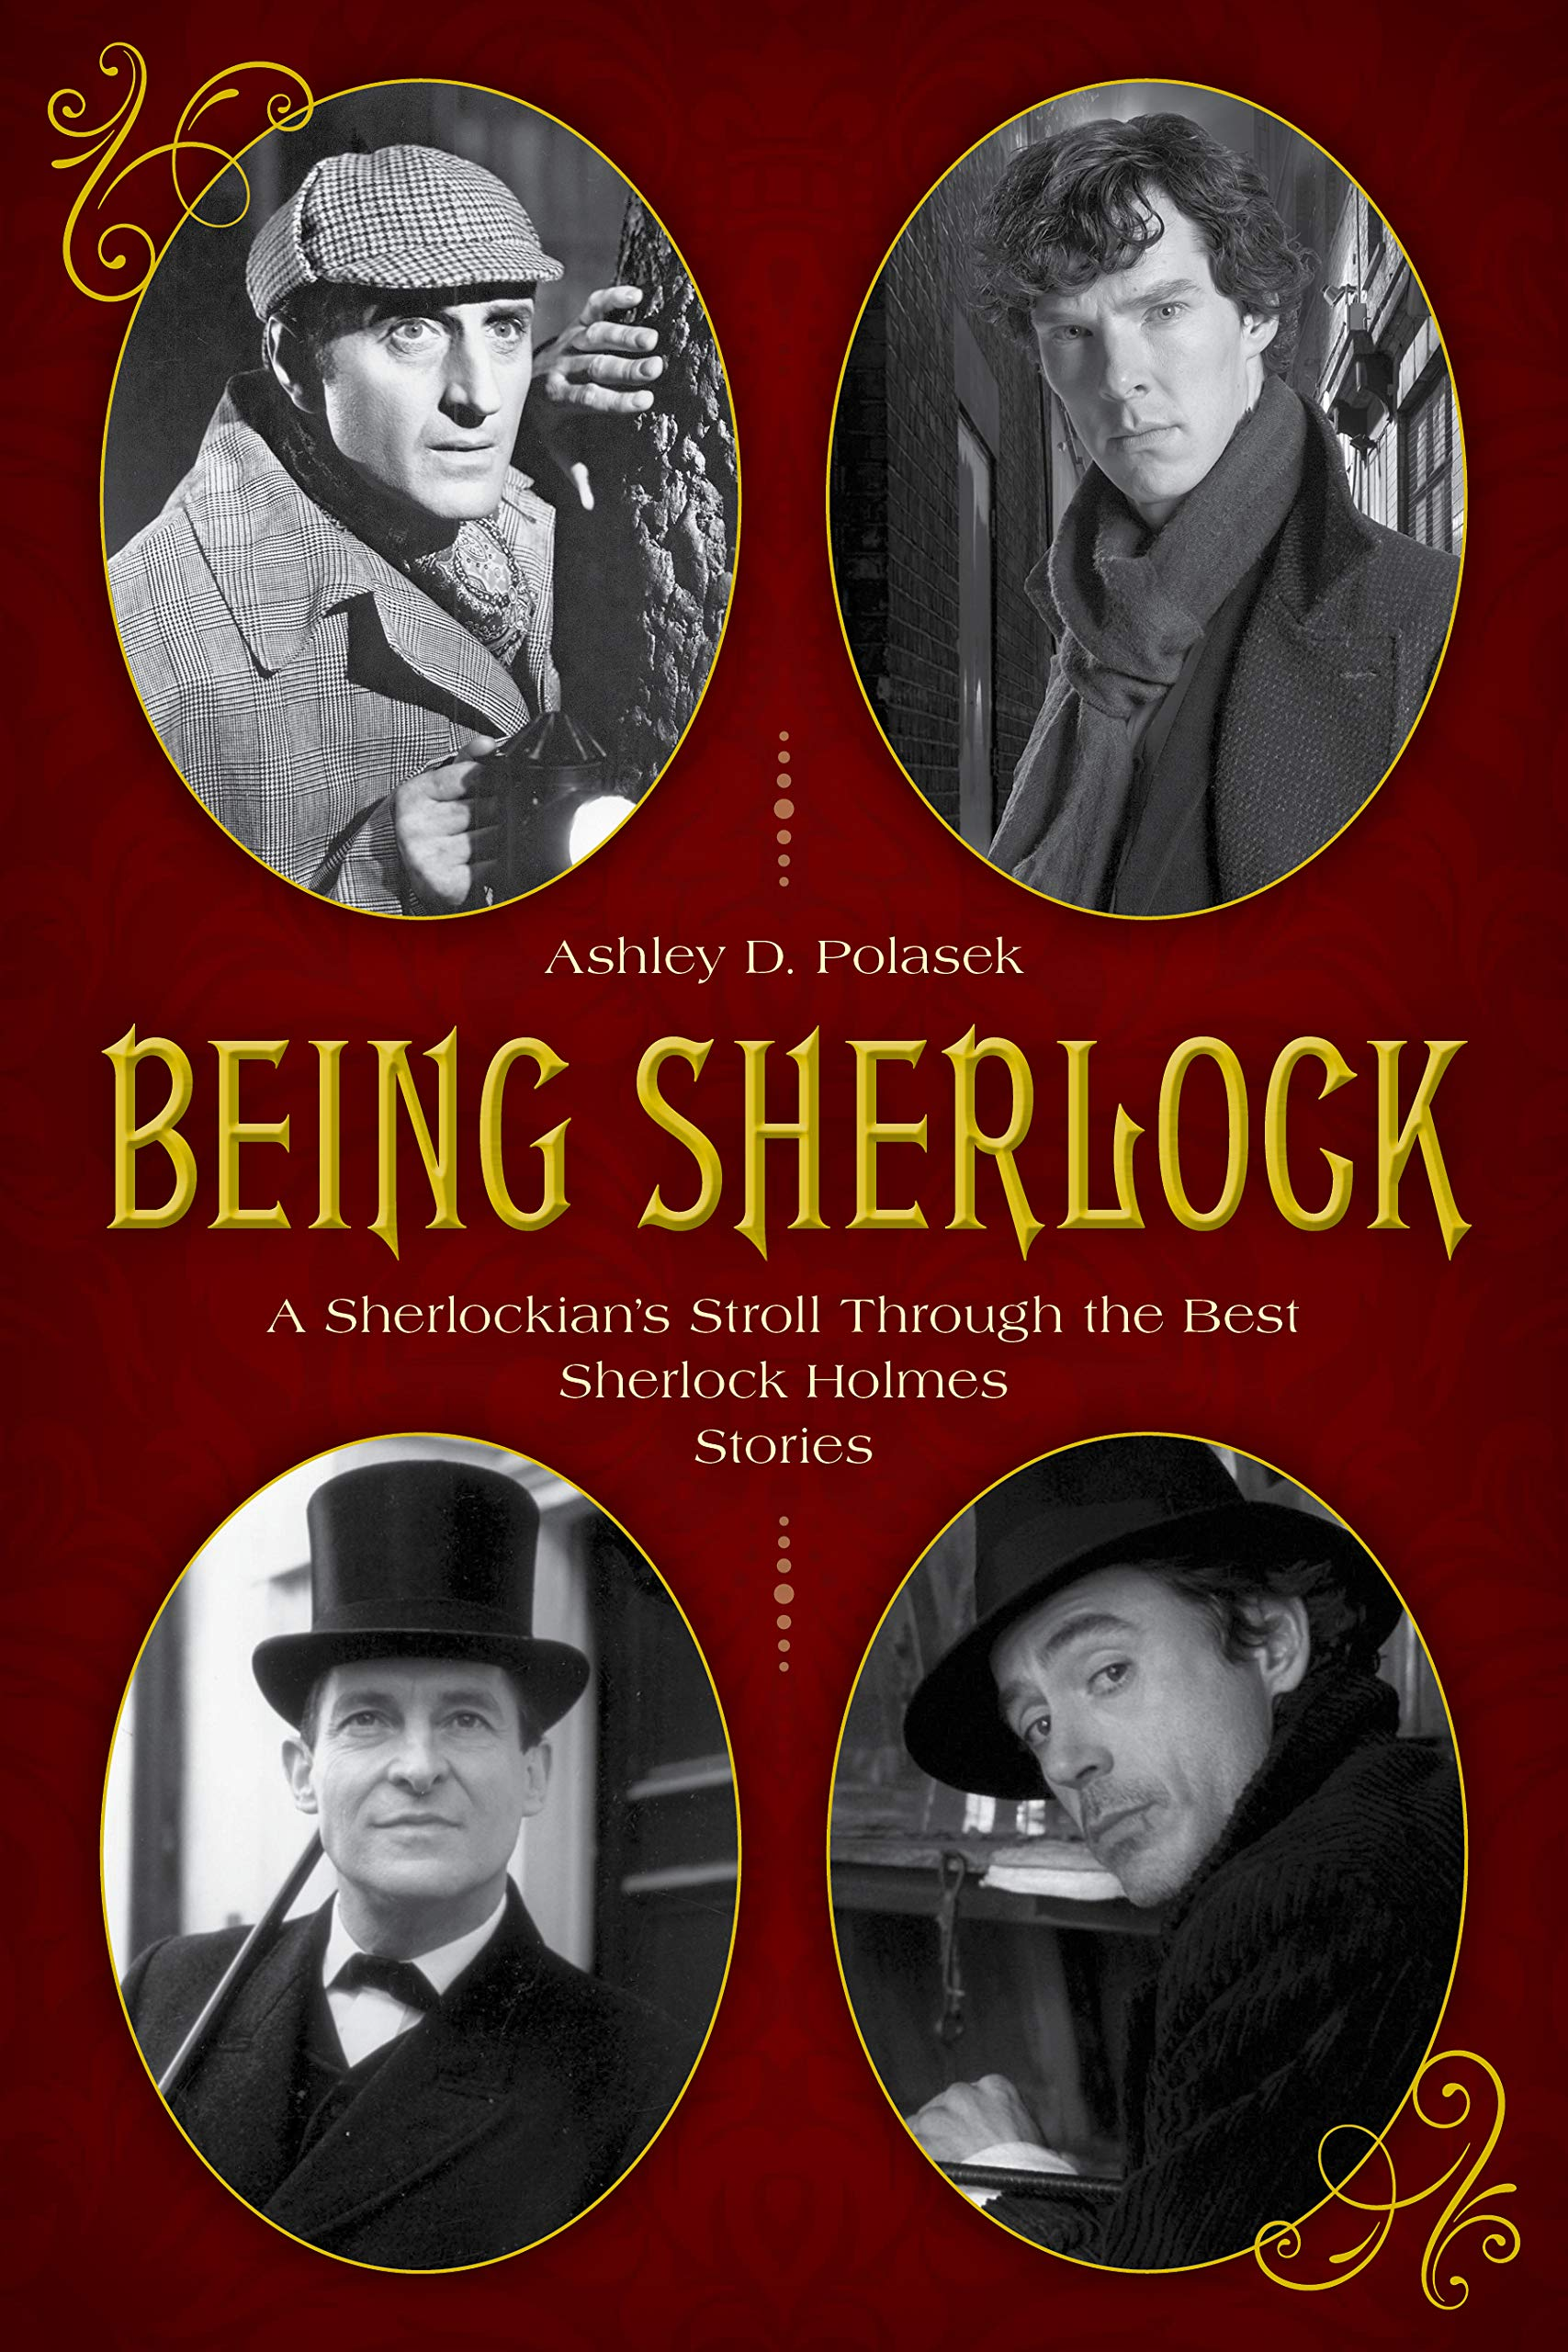 Image result for being sherlock by ashley d. polasek